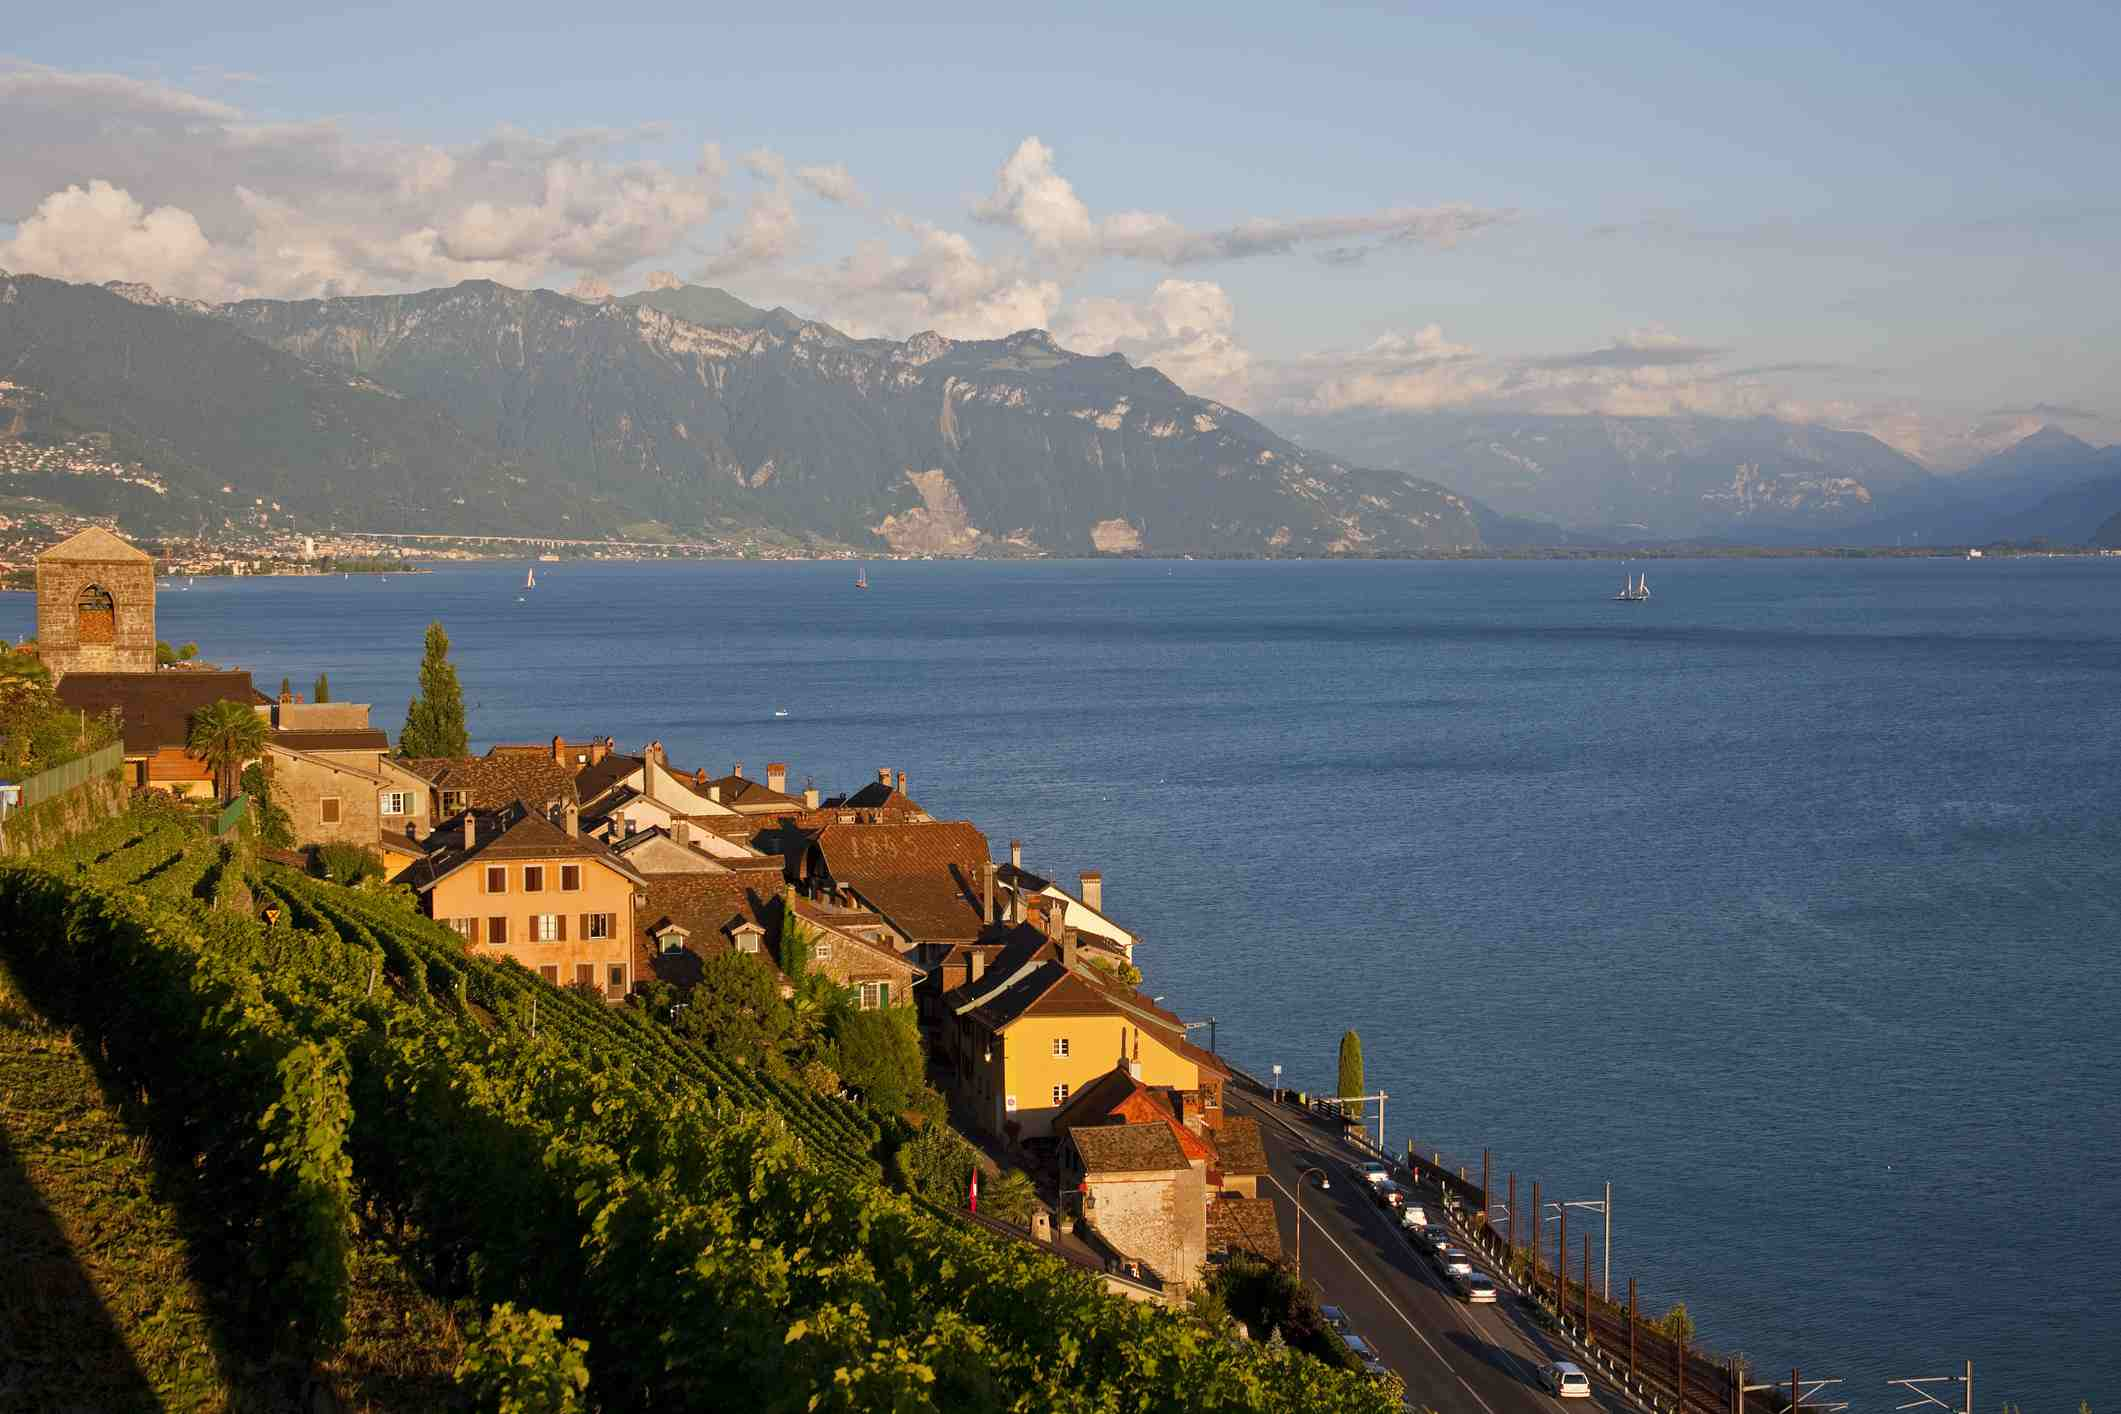 View of Lavaux and Lake Leman. Lavaux is part of a World Heritage Site and is a wine production area with terraces formed since the time of the Romans. Lake Geneva is located on the border between Switzerland and France.